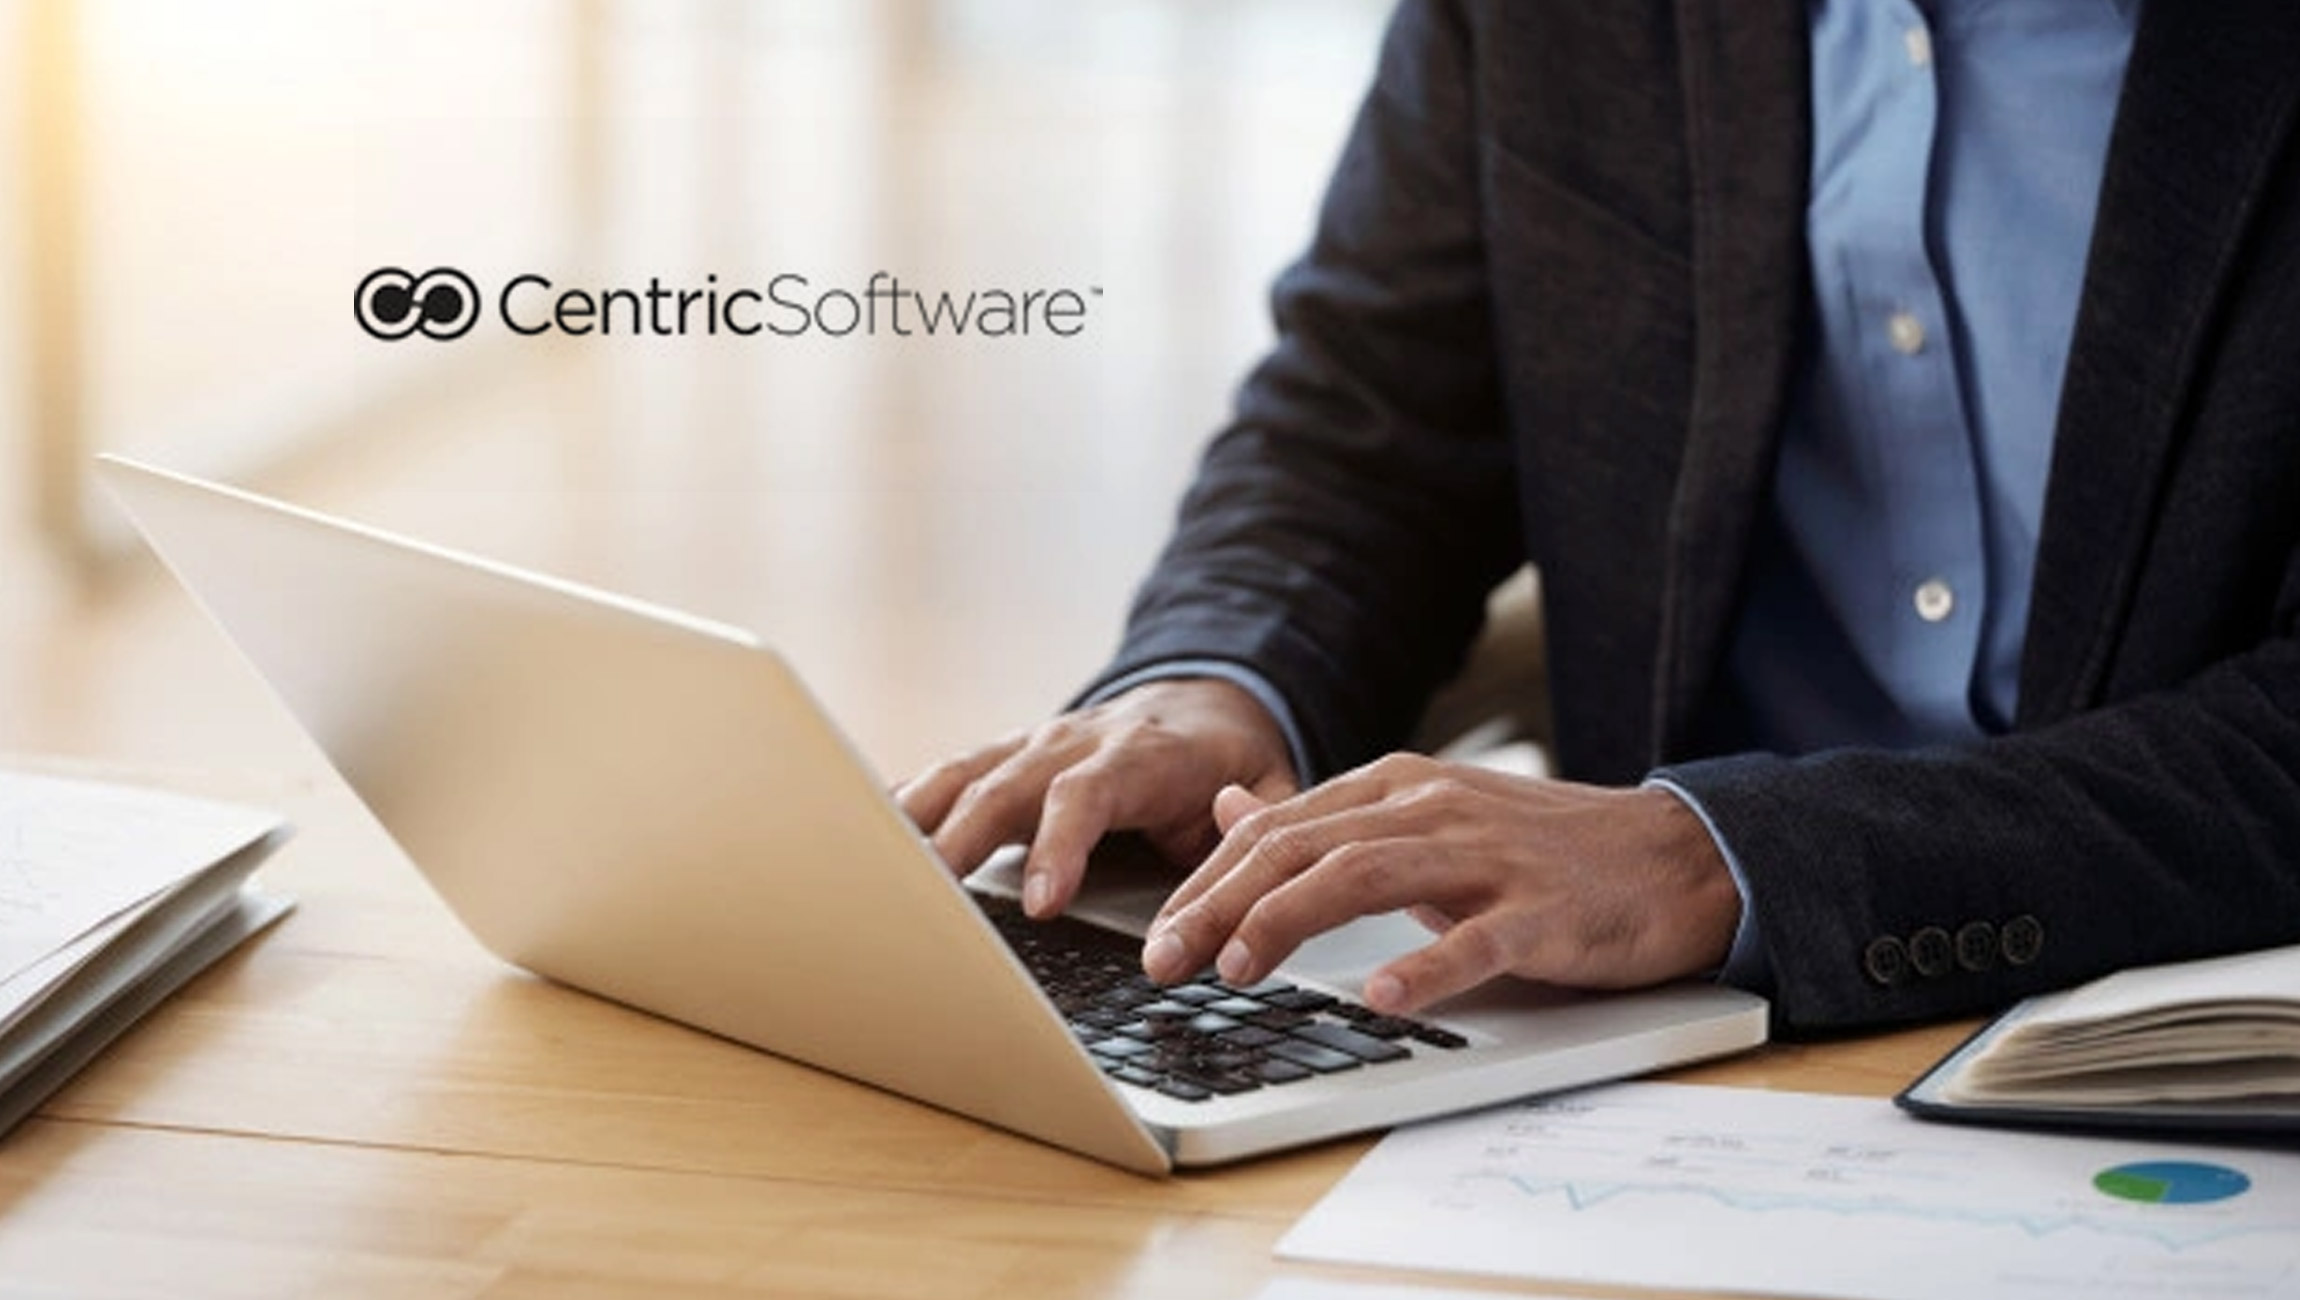 New Centric Software® PLM Release Drives Complete Consumer Product Experience